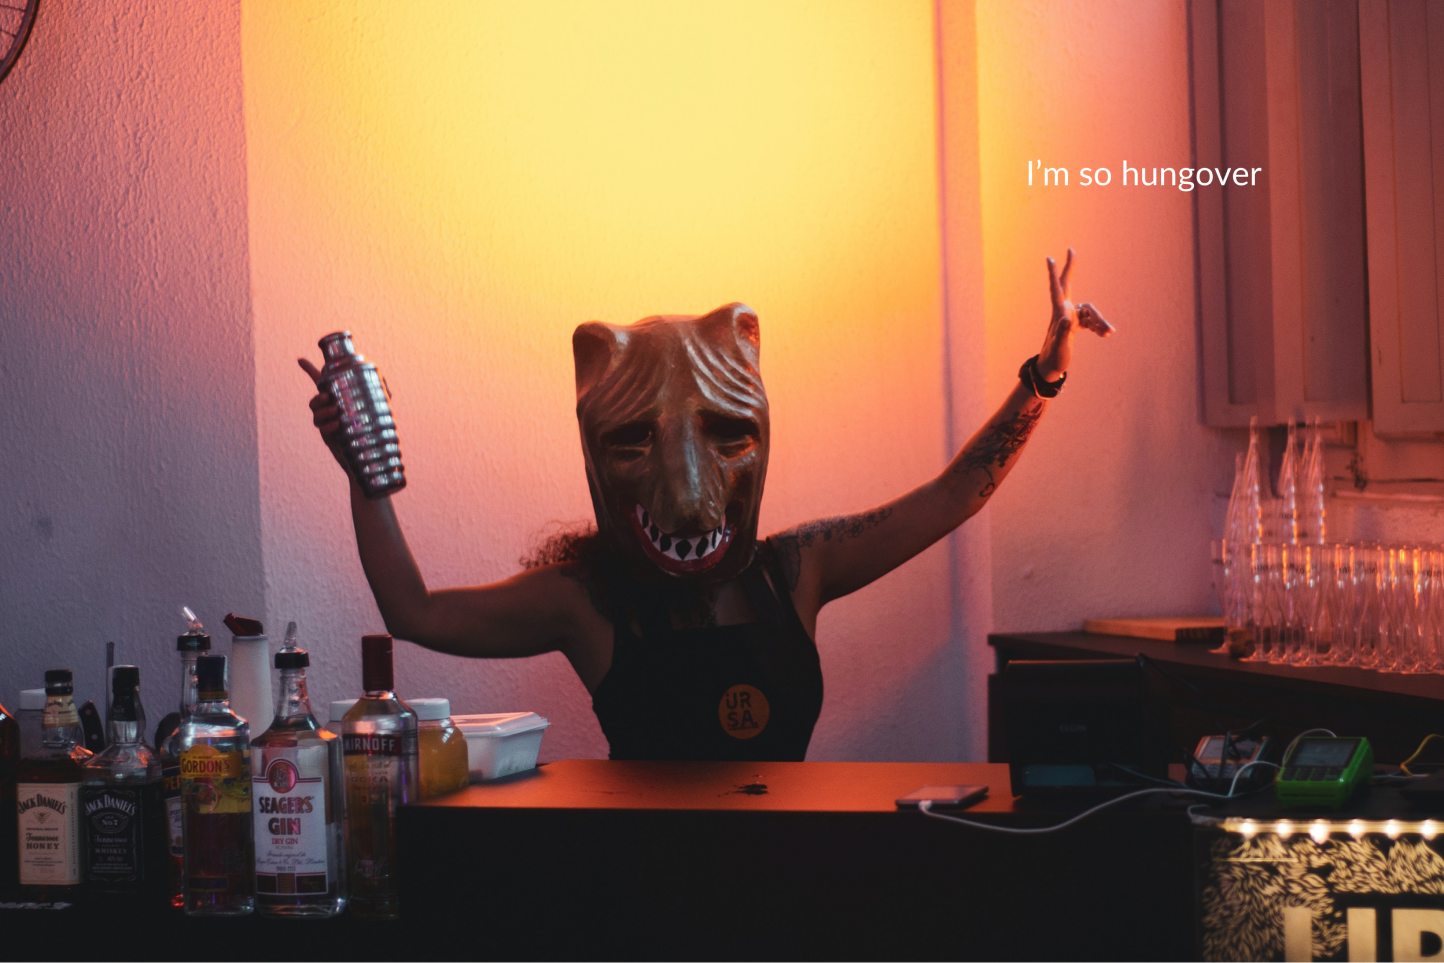 Hungover-Tales-from-your-bartender-june-2021